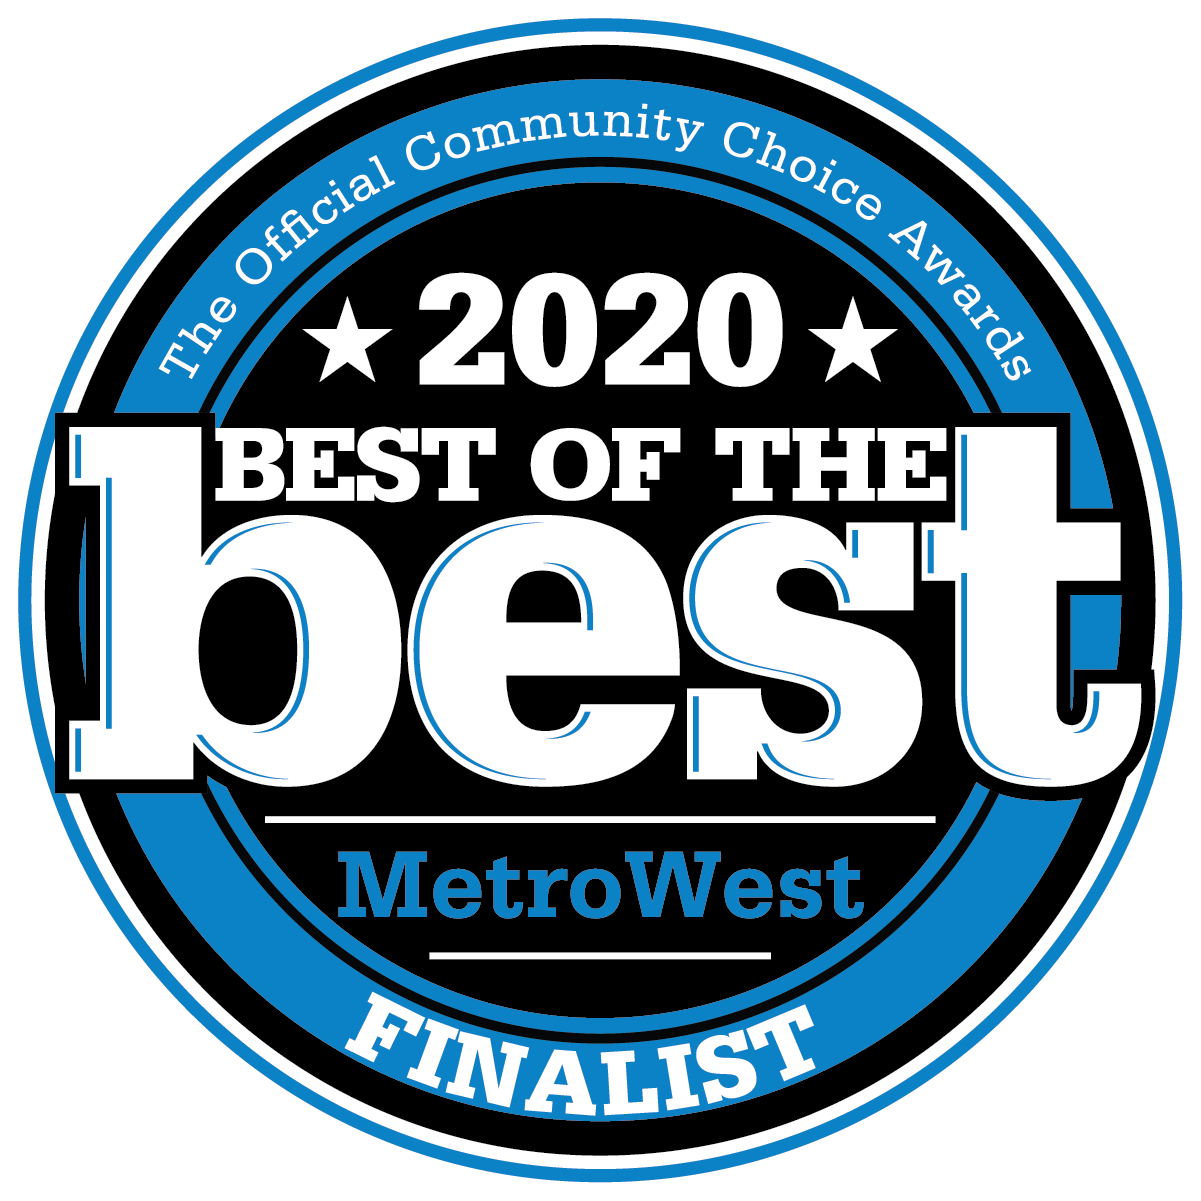 Best of the Best MetroWest Finalist 2020